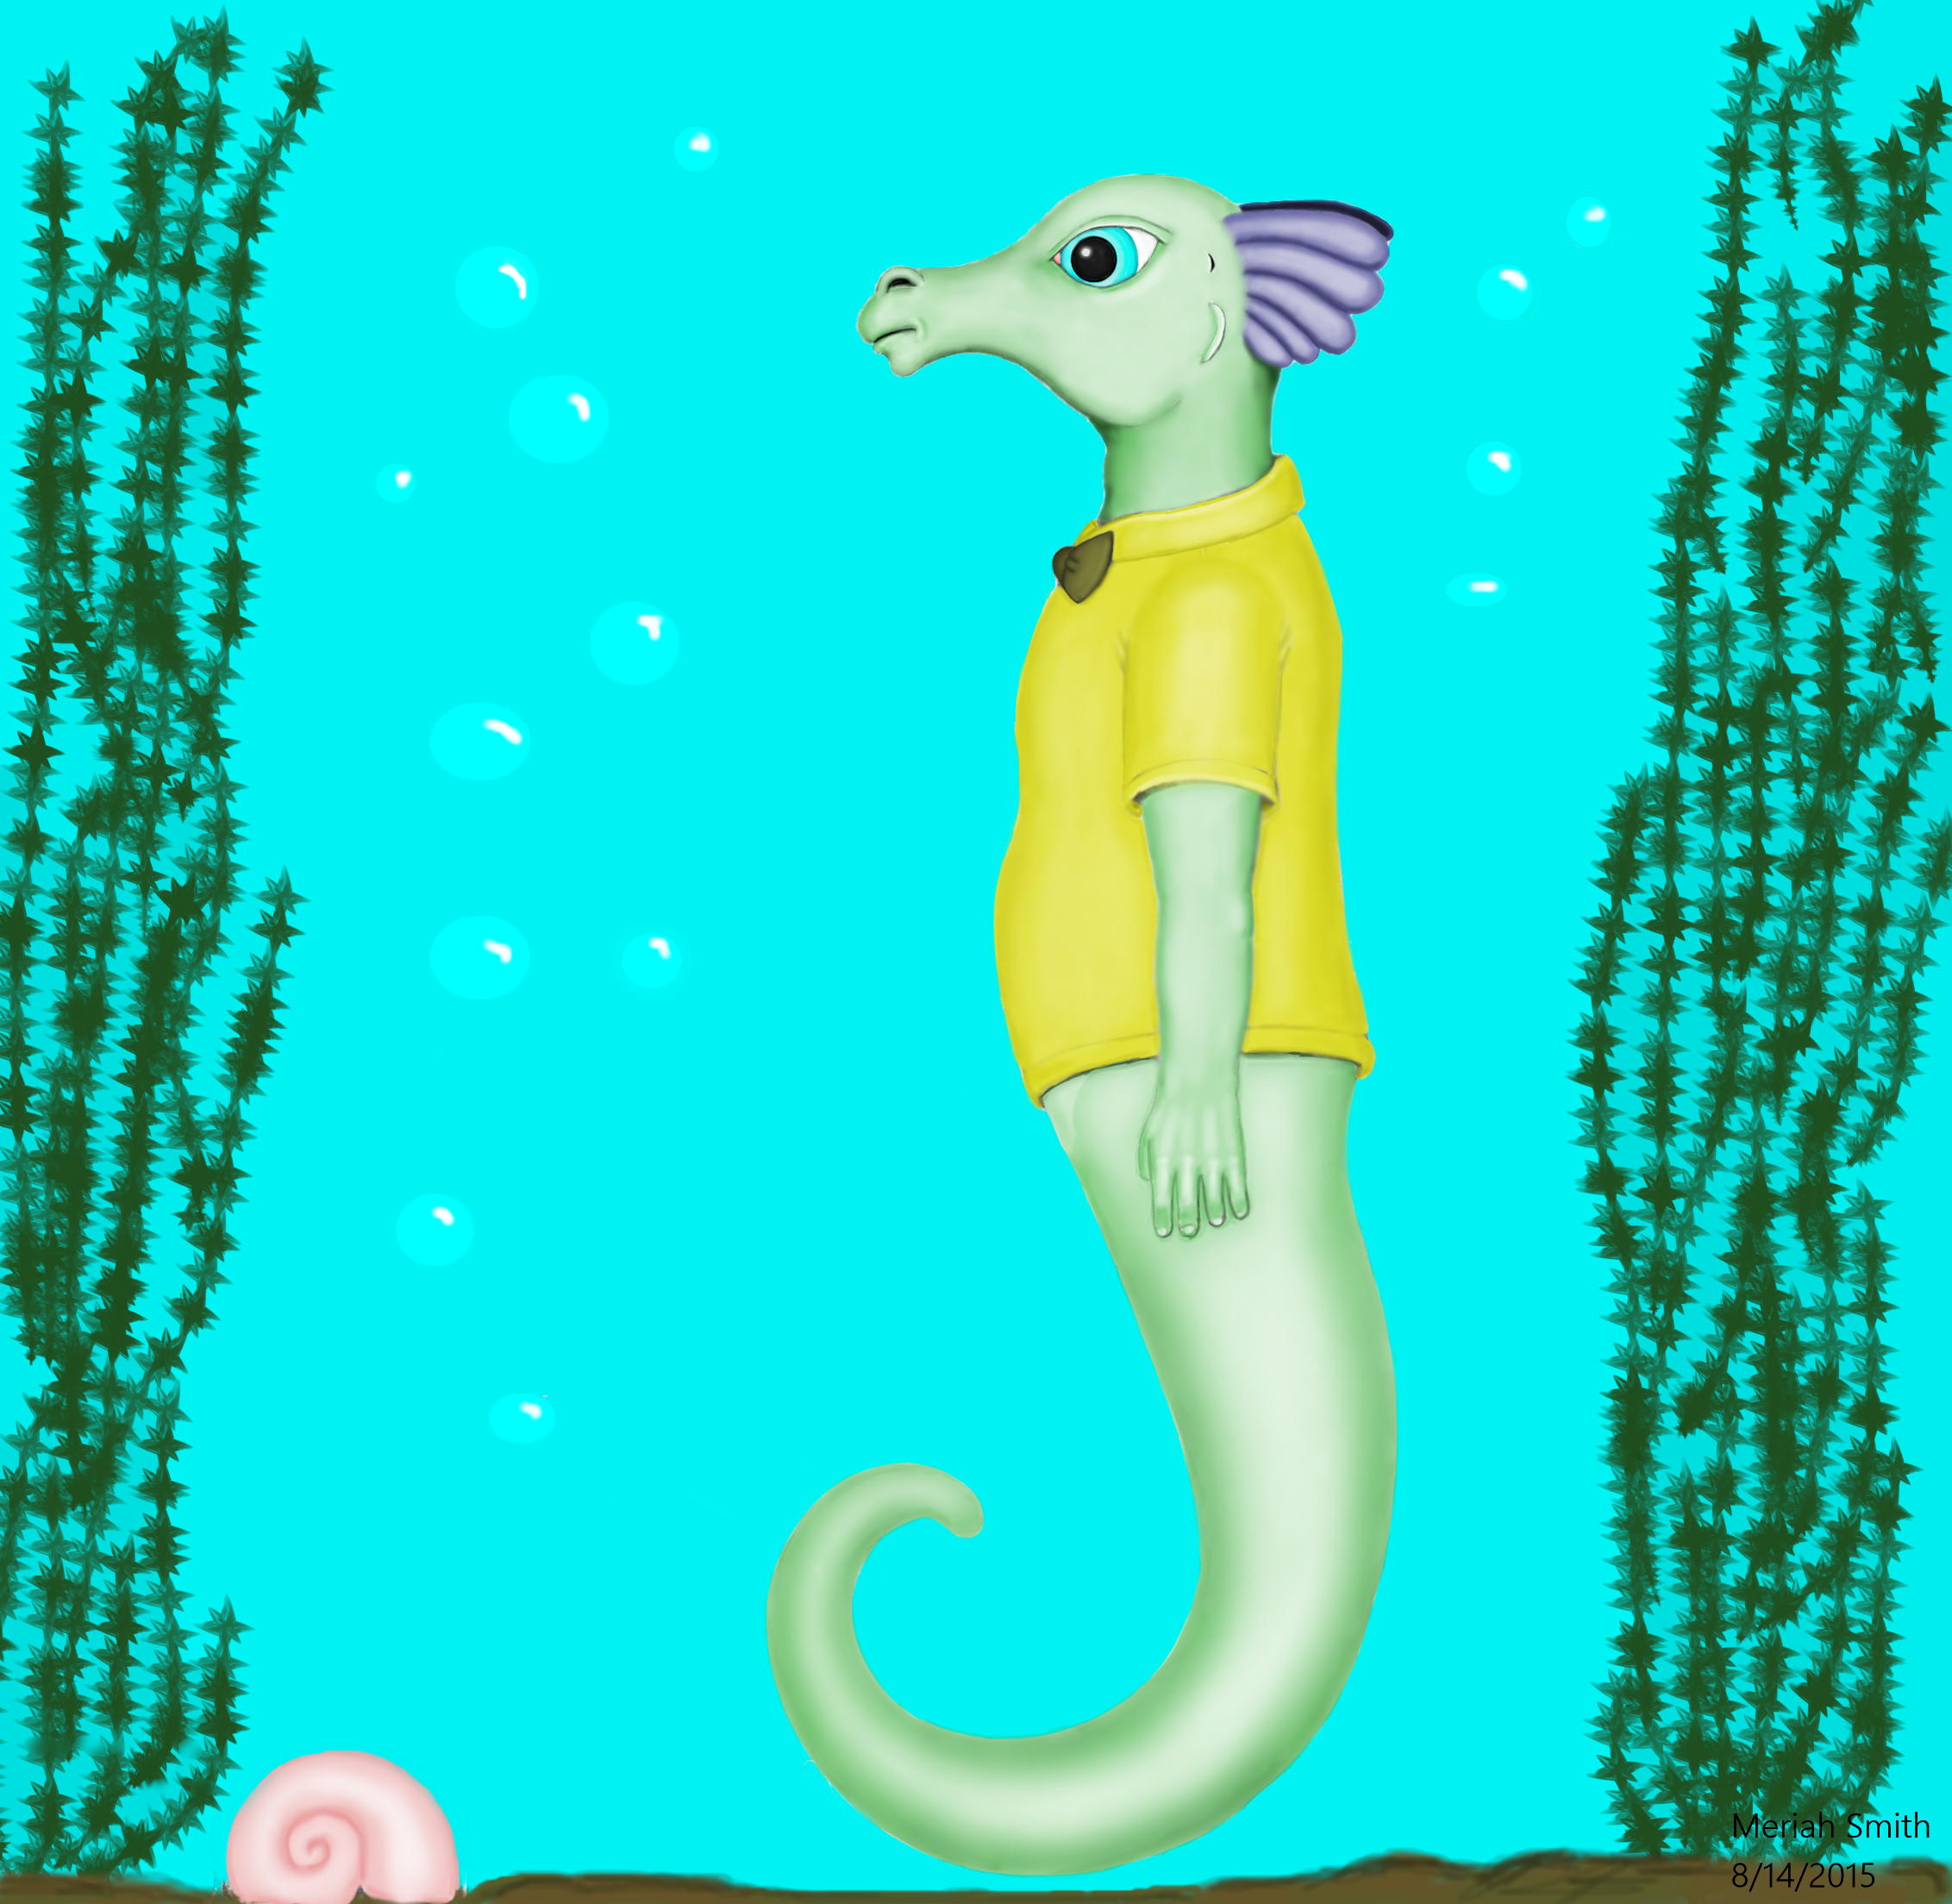 Seahorse Cartoon Character Reference By Cherokeegal1975 On Deviantart